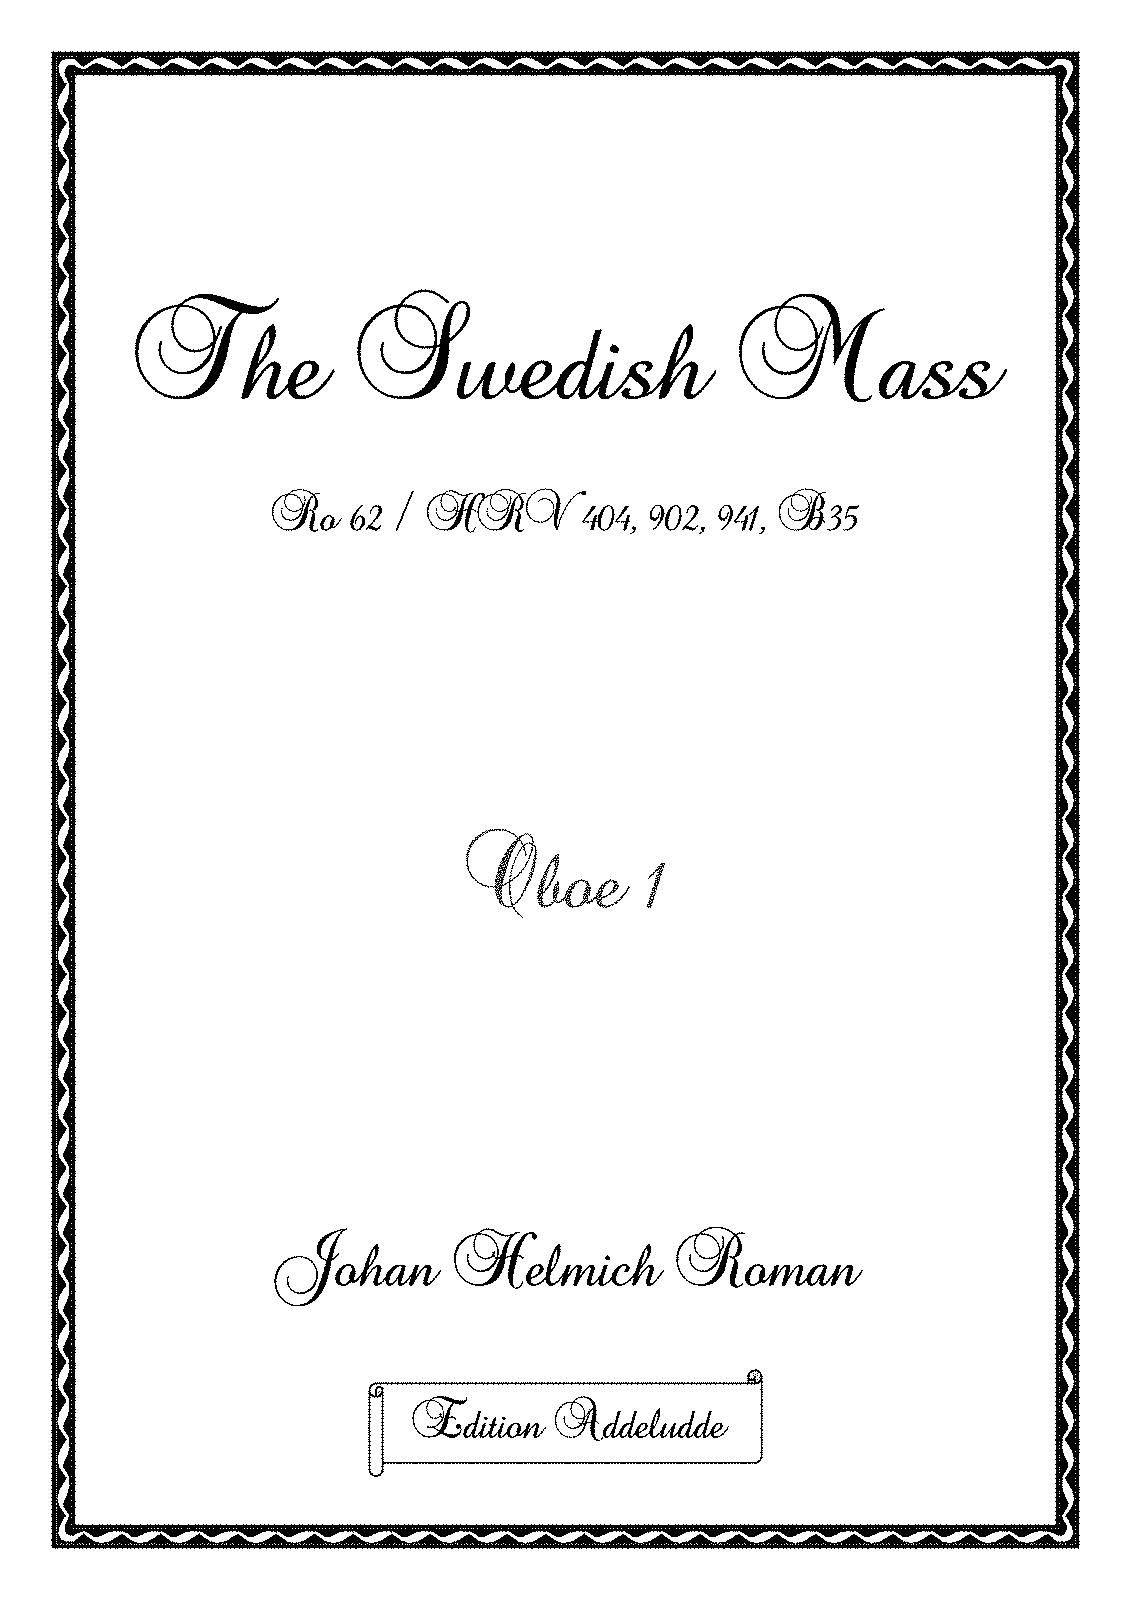 PMLP436890-The Swedish Mass Ob1.pdf